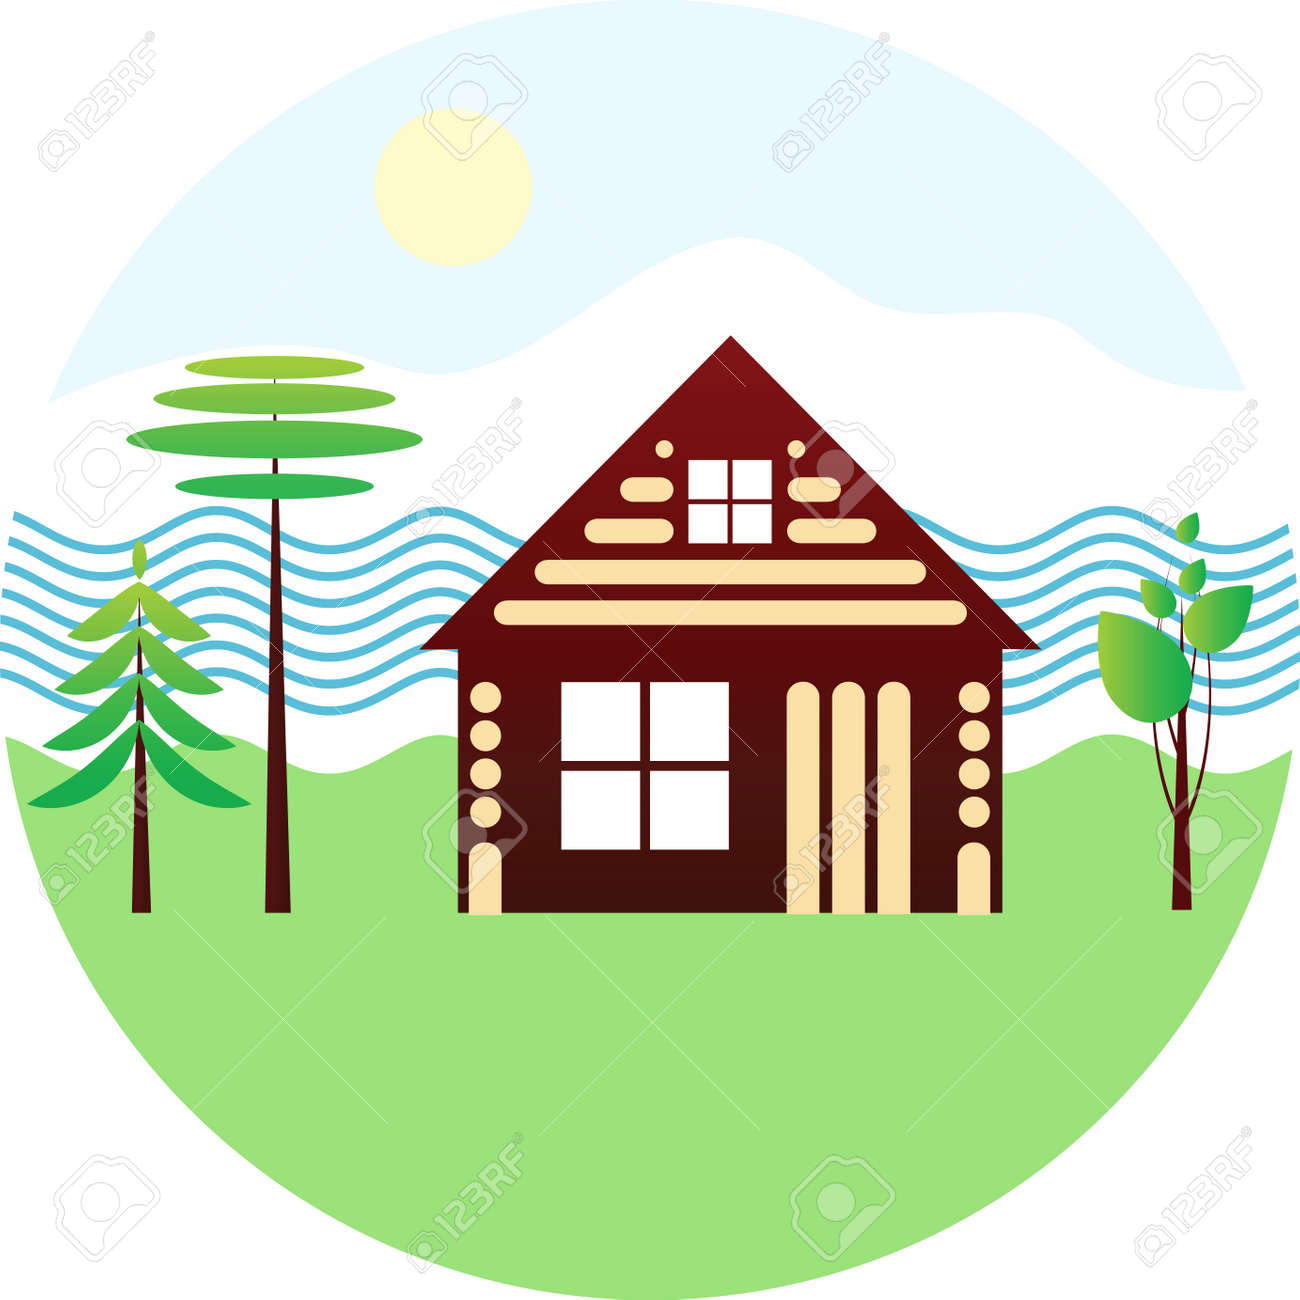 Set Icon - Wooden House, River, Different Trees, Schematic Drawing